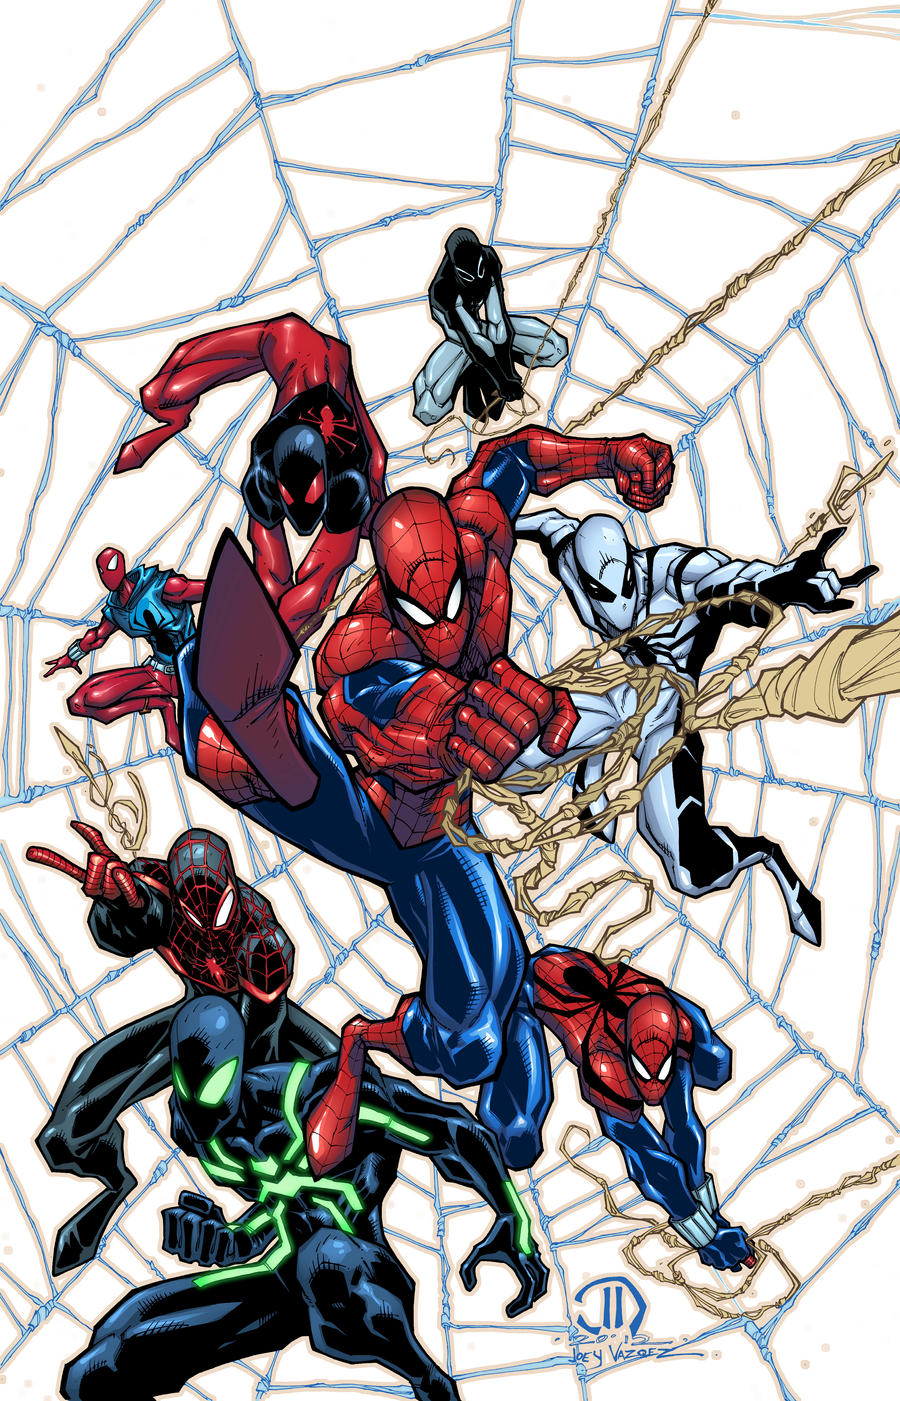 SPIDEY MONTAGE COLORS by JoeyVazquez